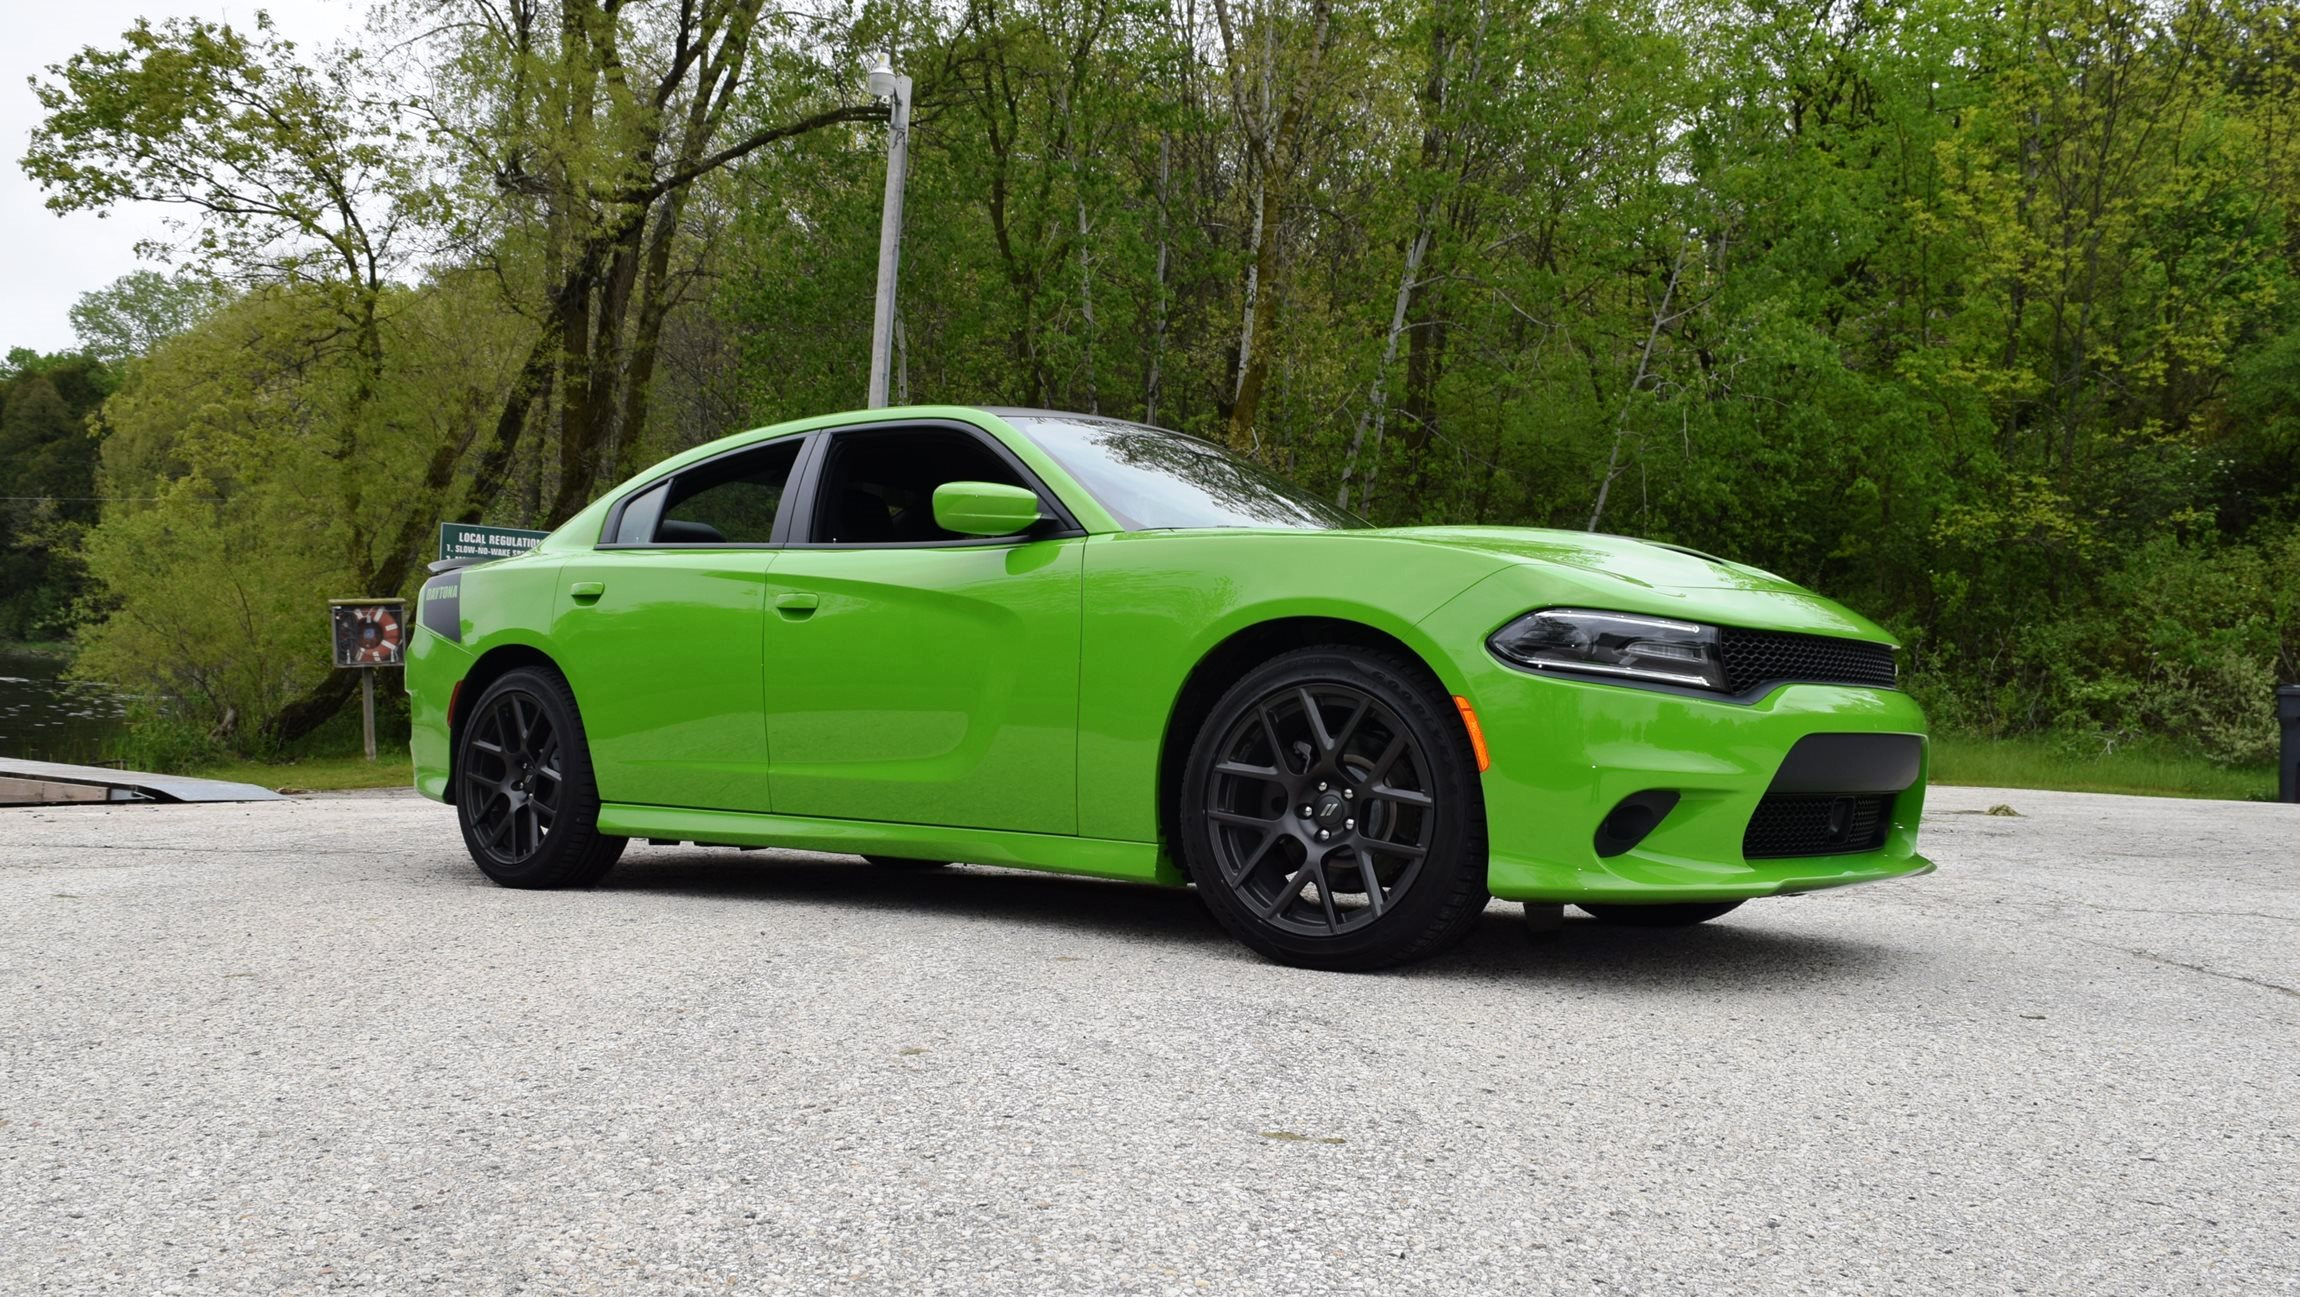 2017 Dodge Charger DAYTONA 9